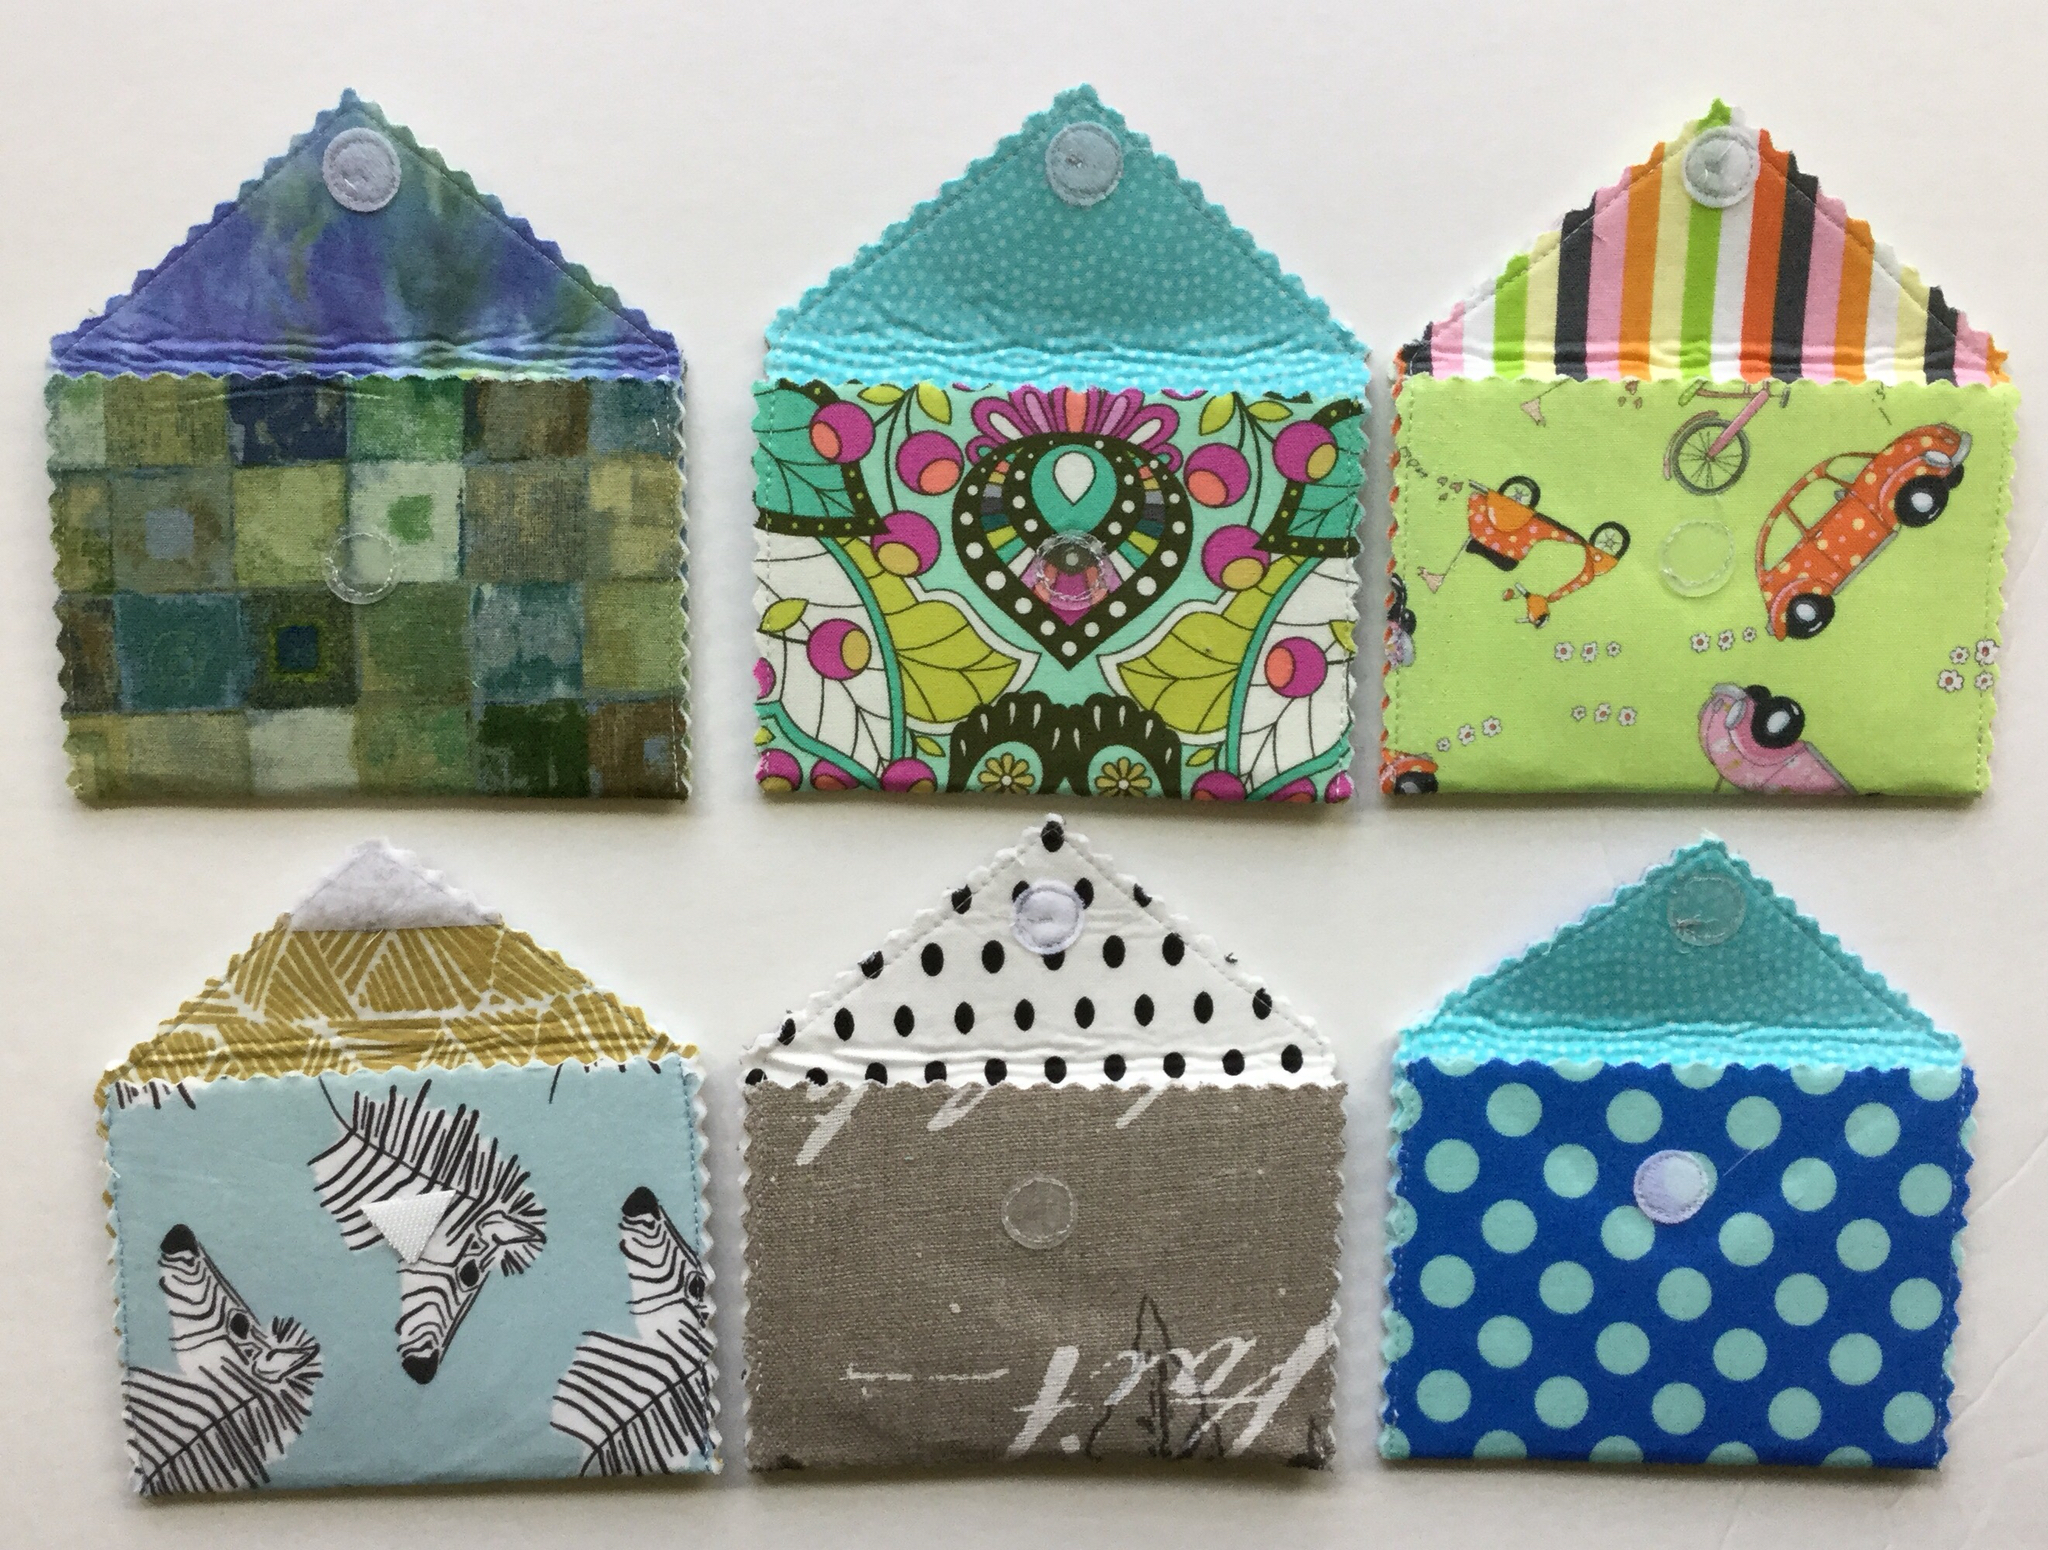 Cheryl lynch quilts november 2016 for the gift card holders i used a coordinating fabric for the linings these make a gift card super special im going to include a video tutorial in my solutioingenieria Image collections